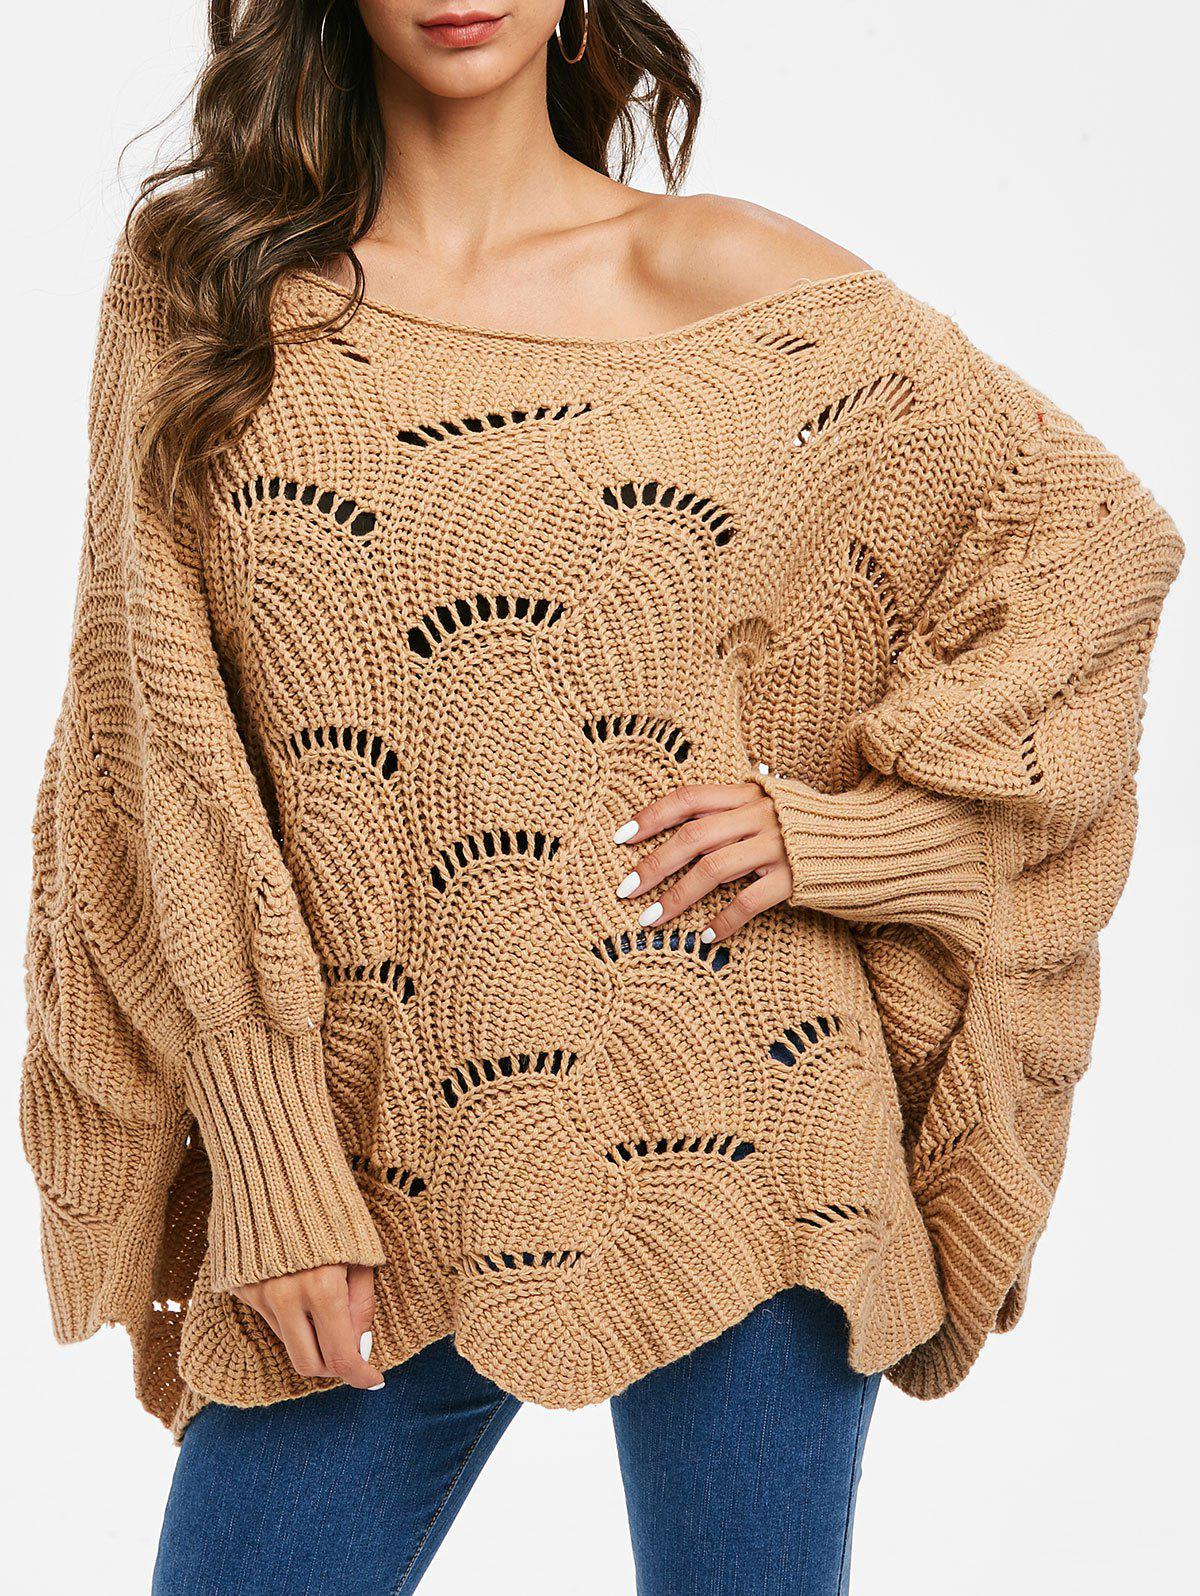 New Open Knit Batwing Sleeve Loose Sweater